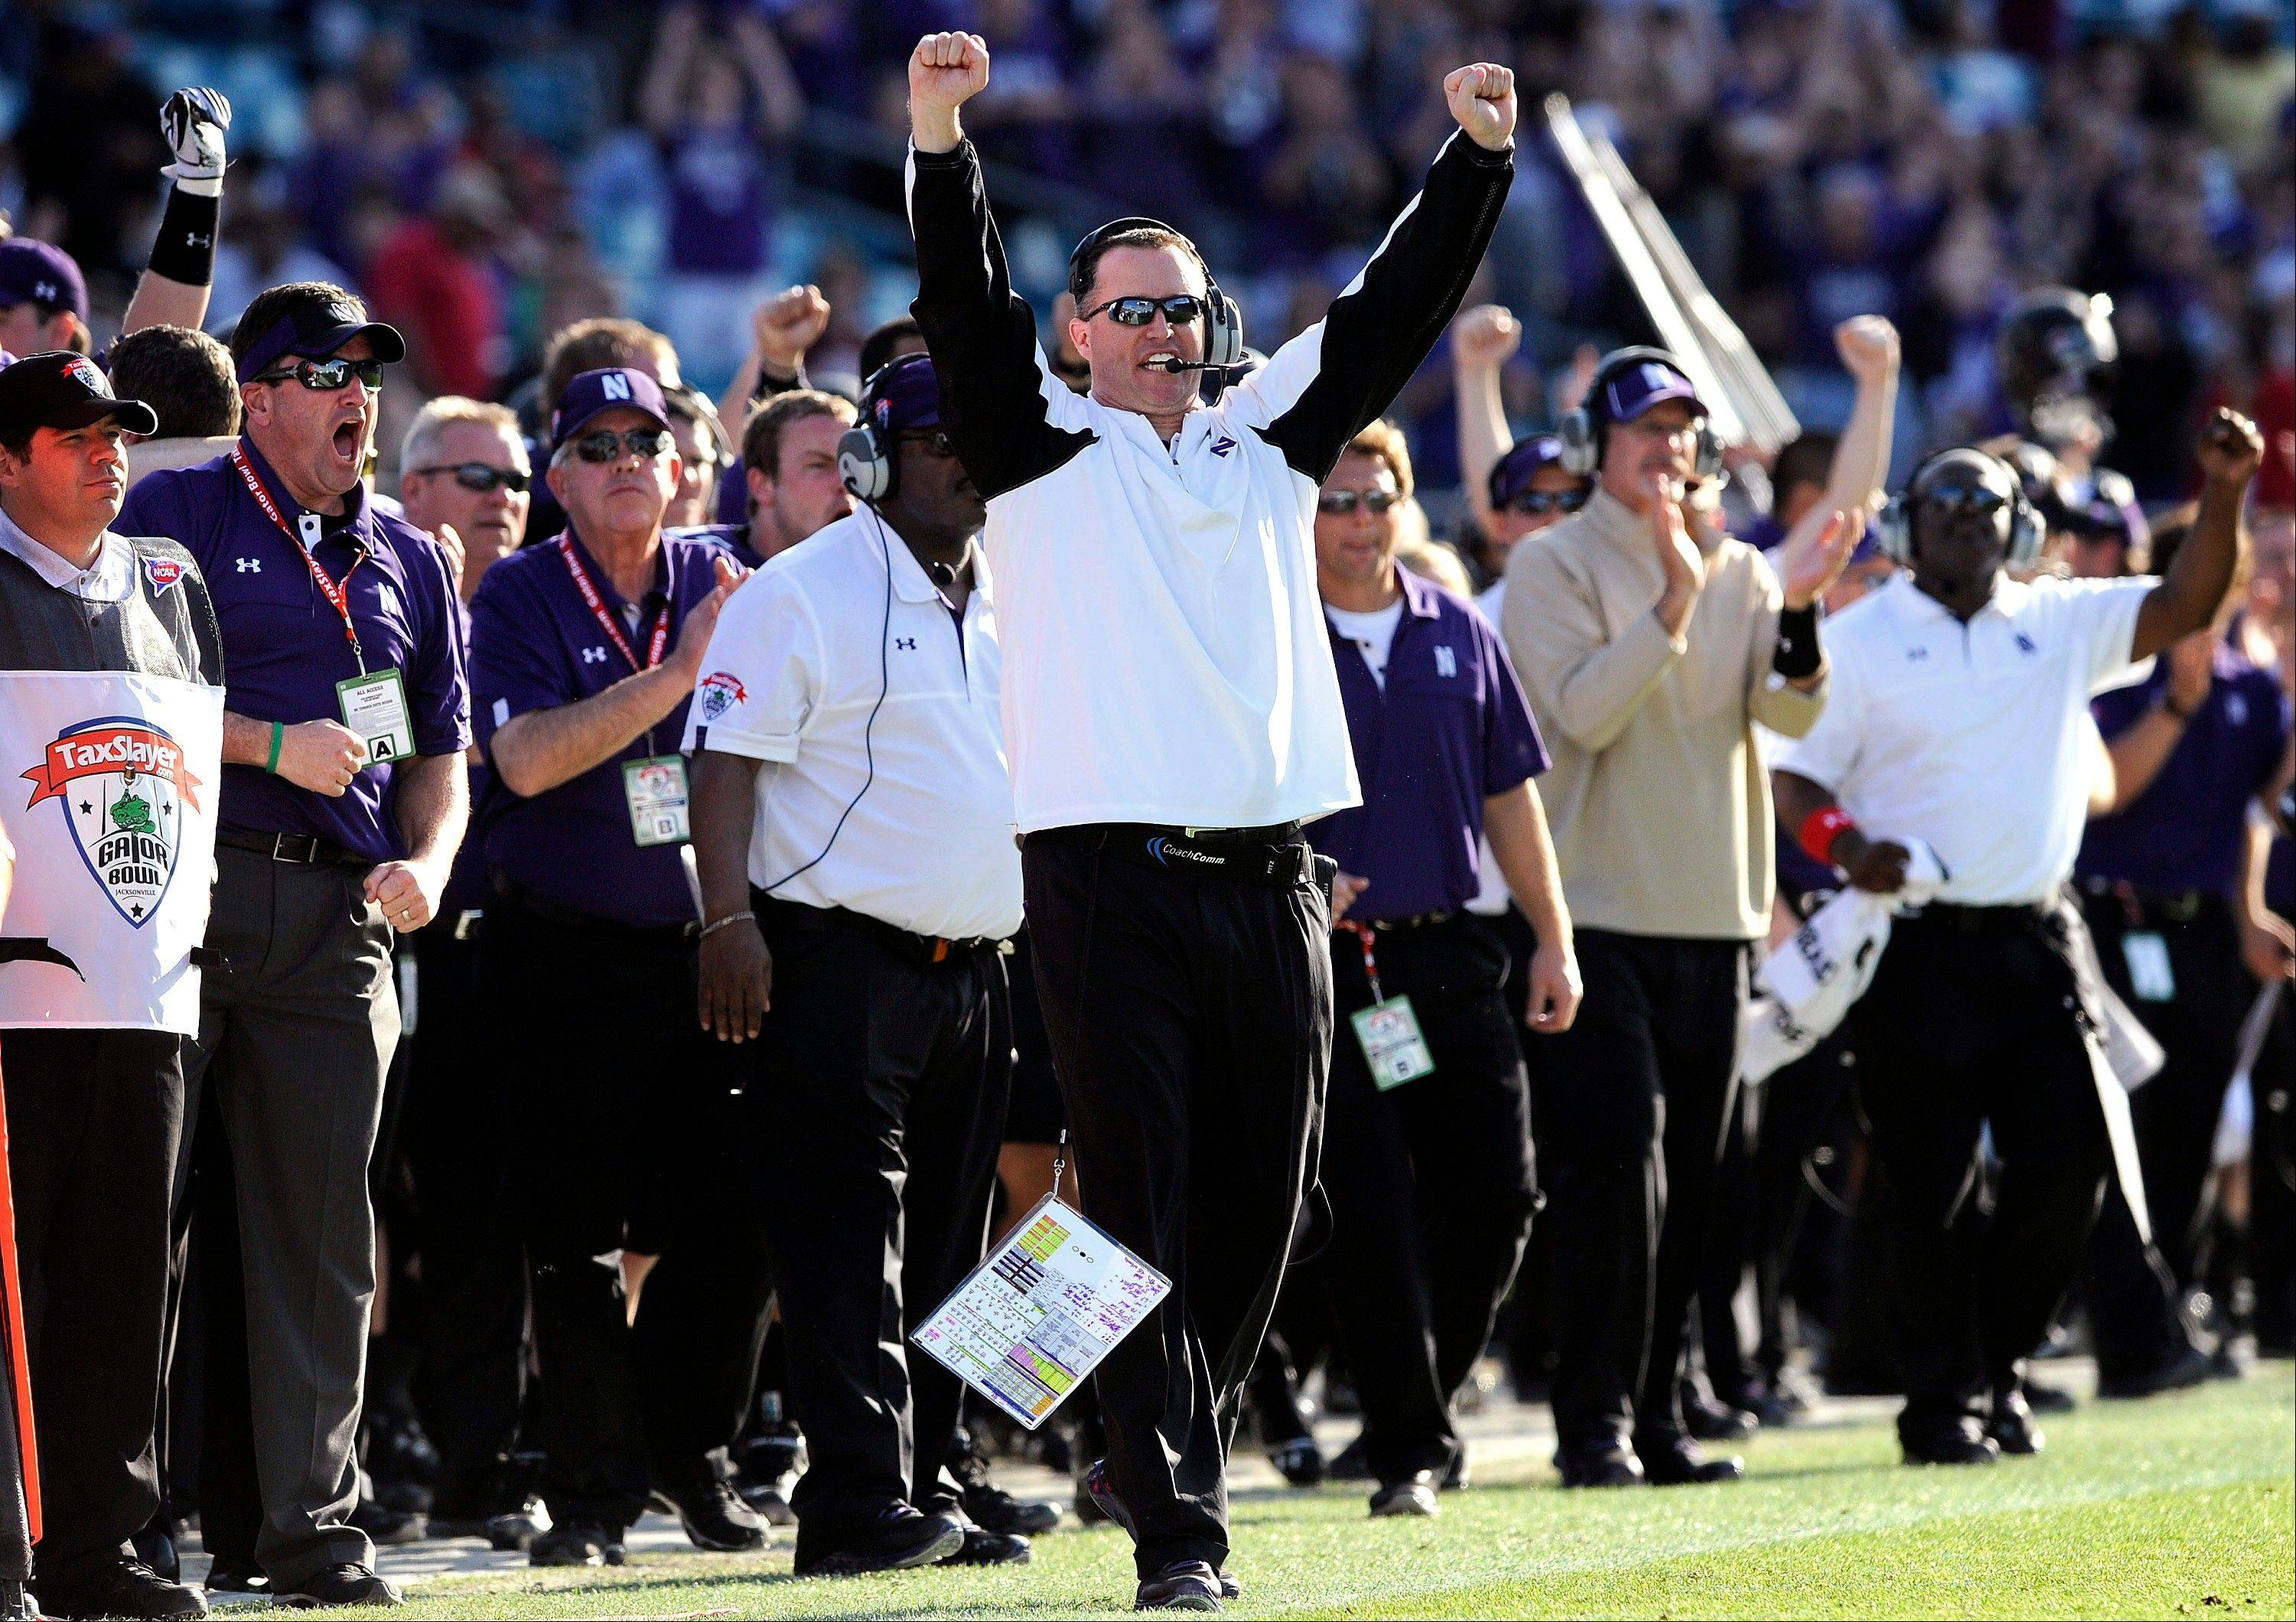 Northwestern coach Pat Fitzgerald, celebrating the team�s Gator Bowl victory over Mississippi State on New Year�s Day, expects a tough game when his Wildcats visit the Cal Bears on Saturday night.